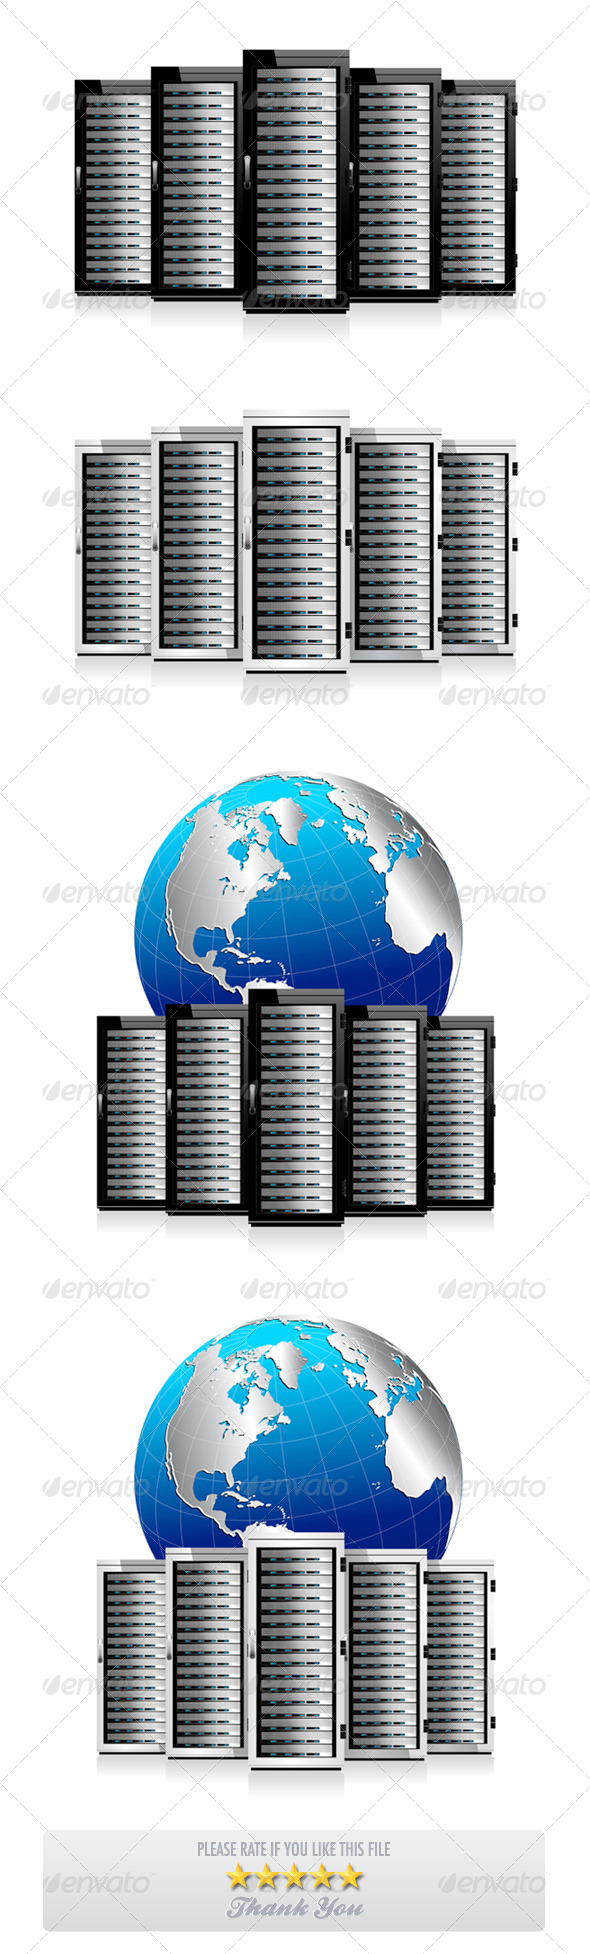 GraphicRiver Five Servers with World Globe 7754878